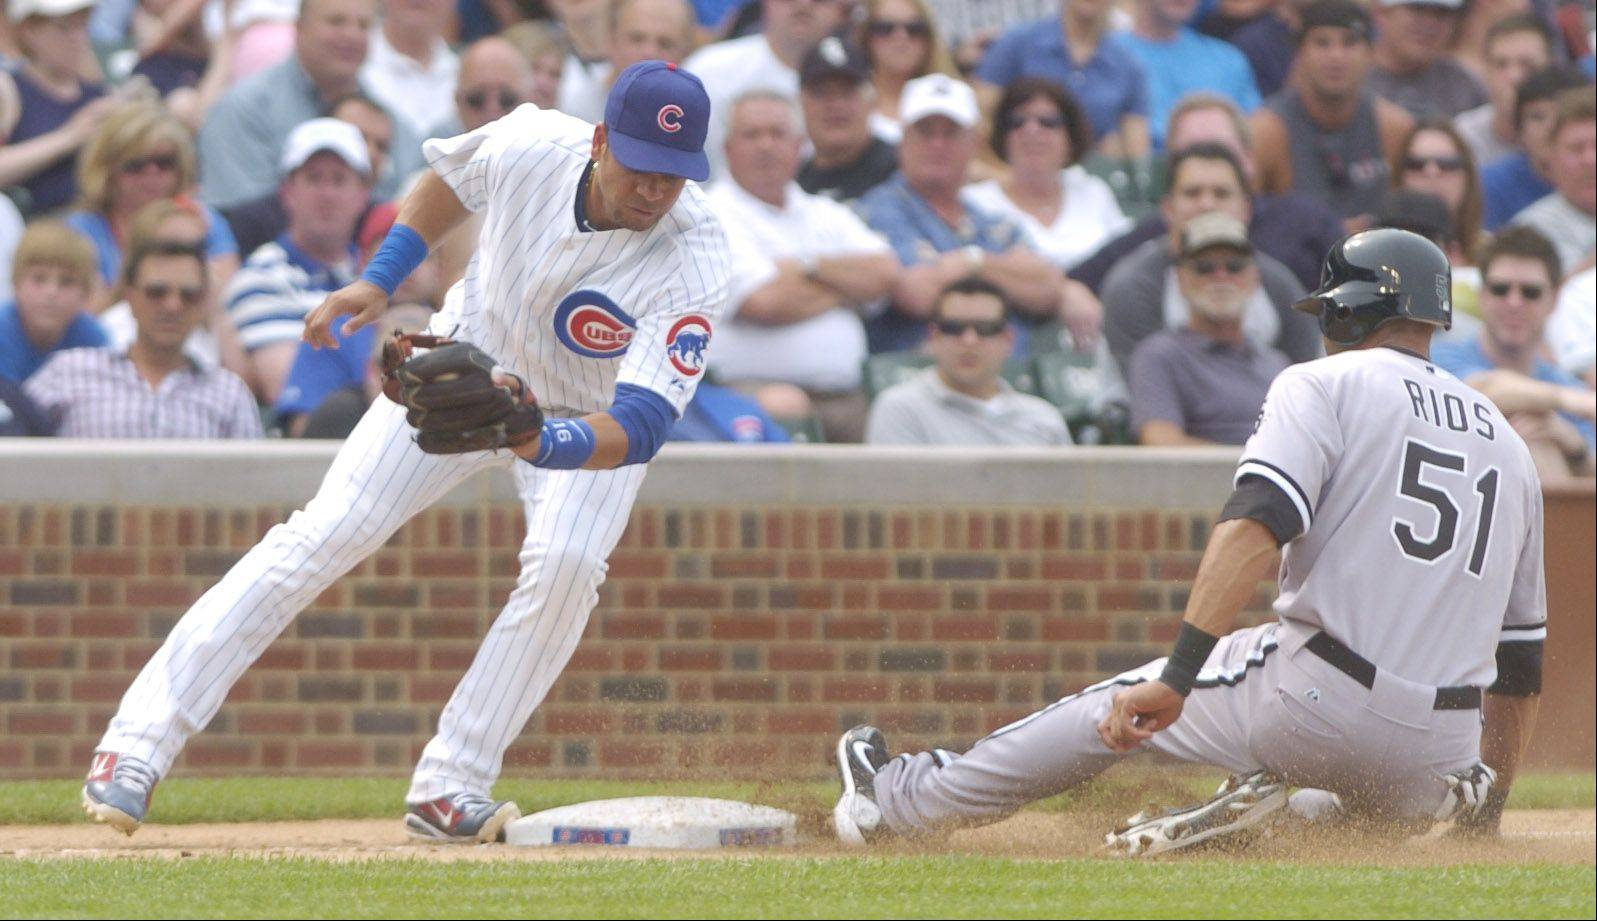 Alex Rios of the White Sox steals third base ahead of the tag by Cubs third baseman Aramis Ramirez during the ninth inning at Wrigley Field Friday.